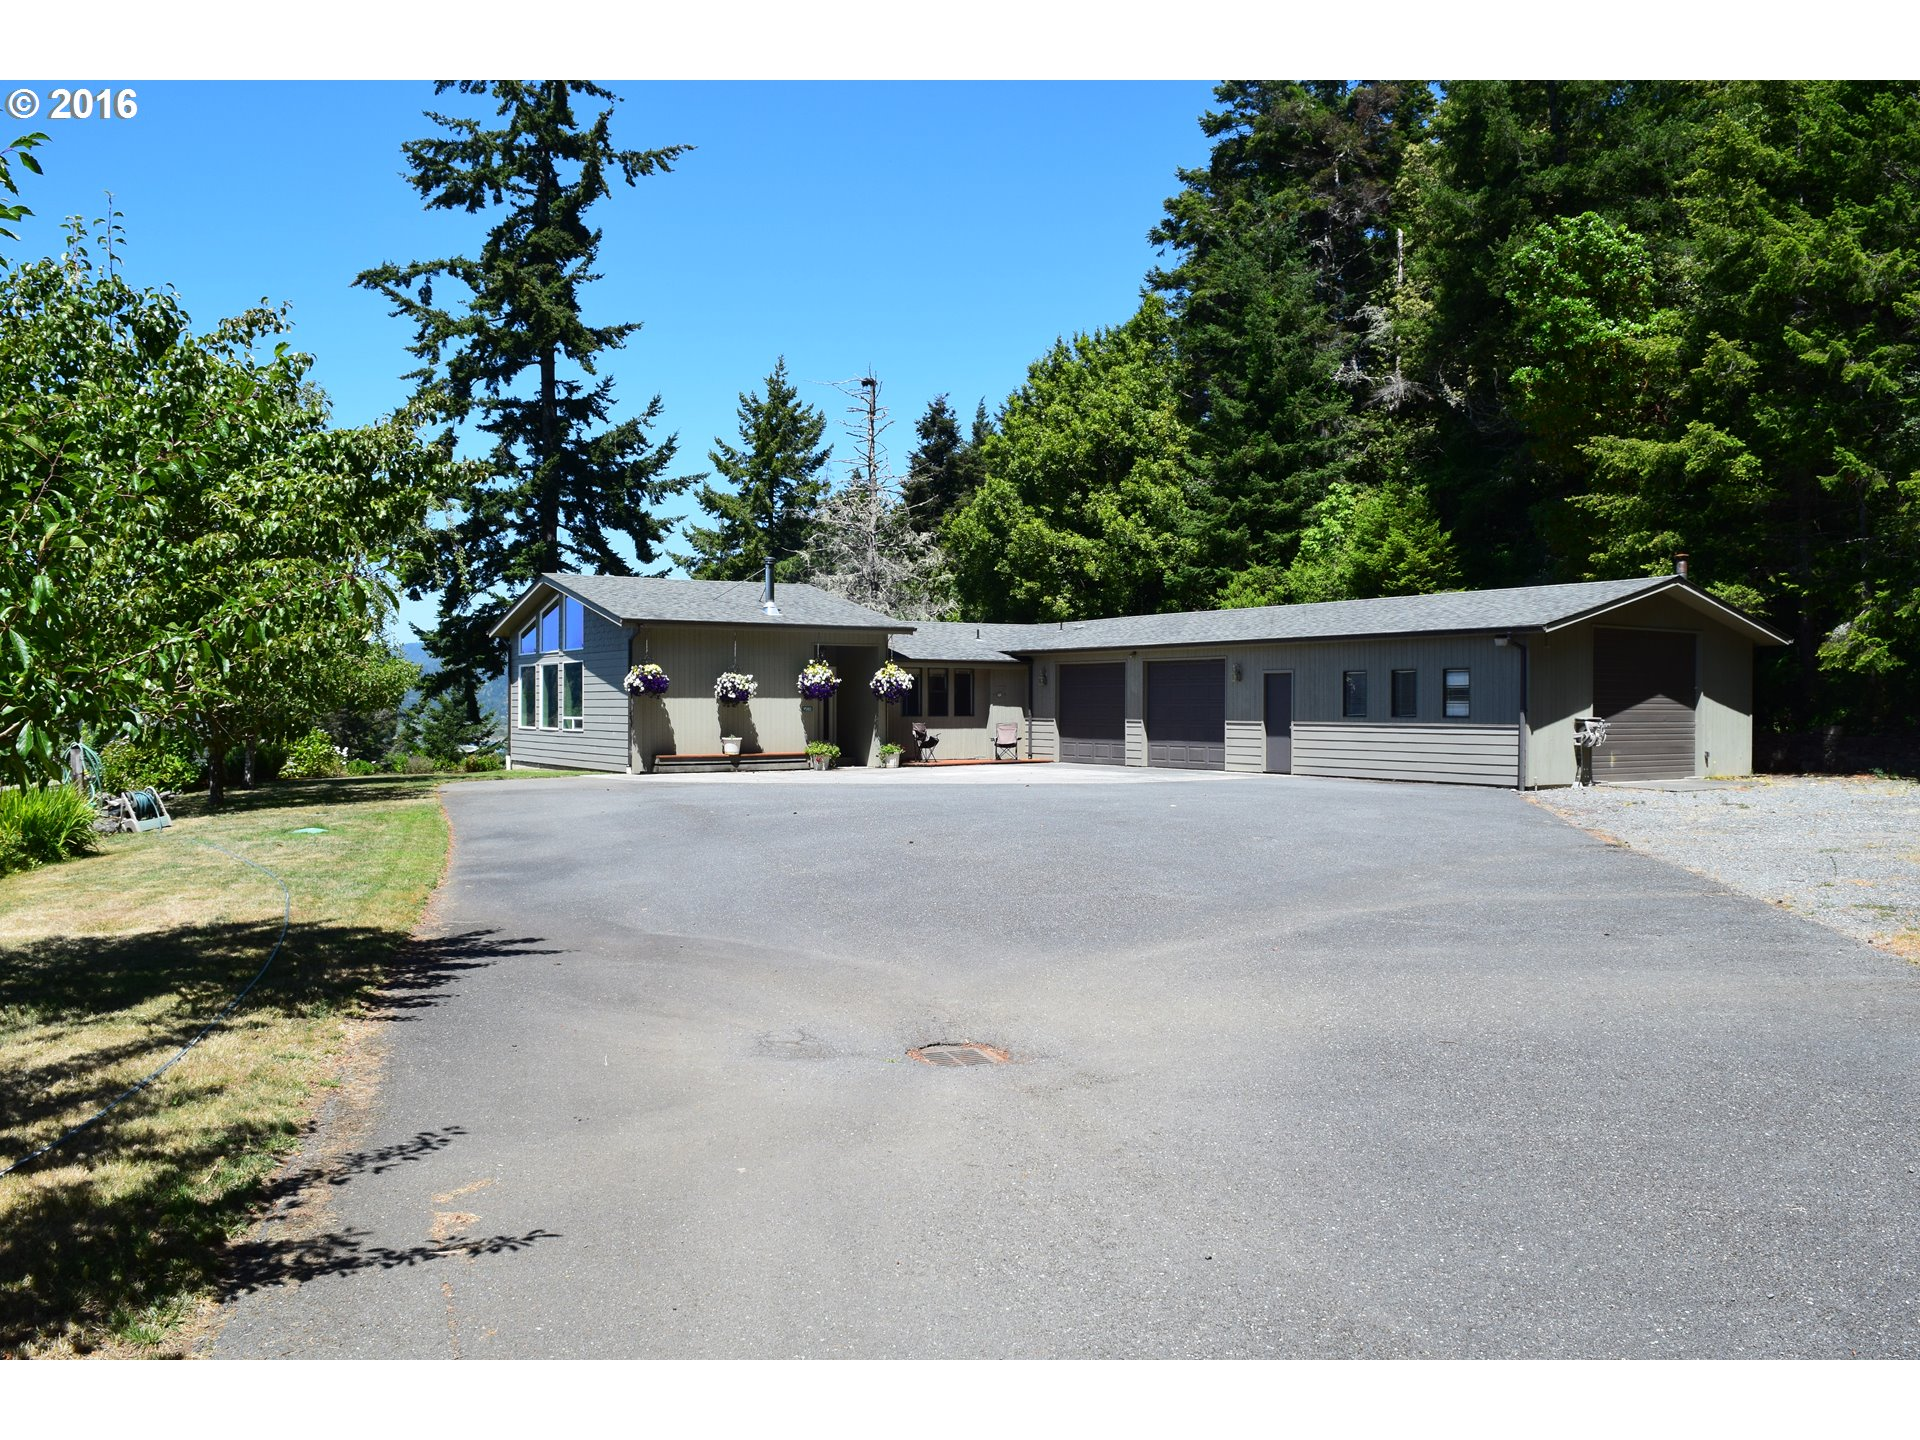 95183 MOUNTAIN RD Gold Beach, Brookings Home Listings - Pacific Coastal Real Estate